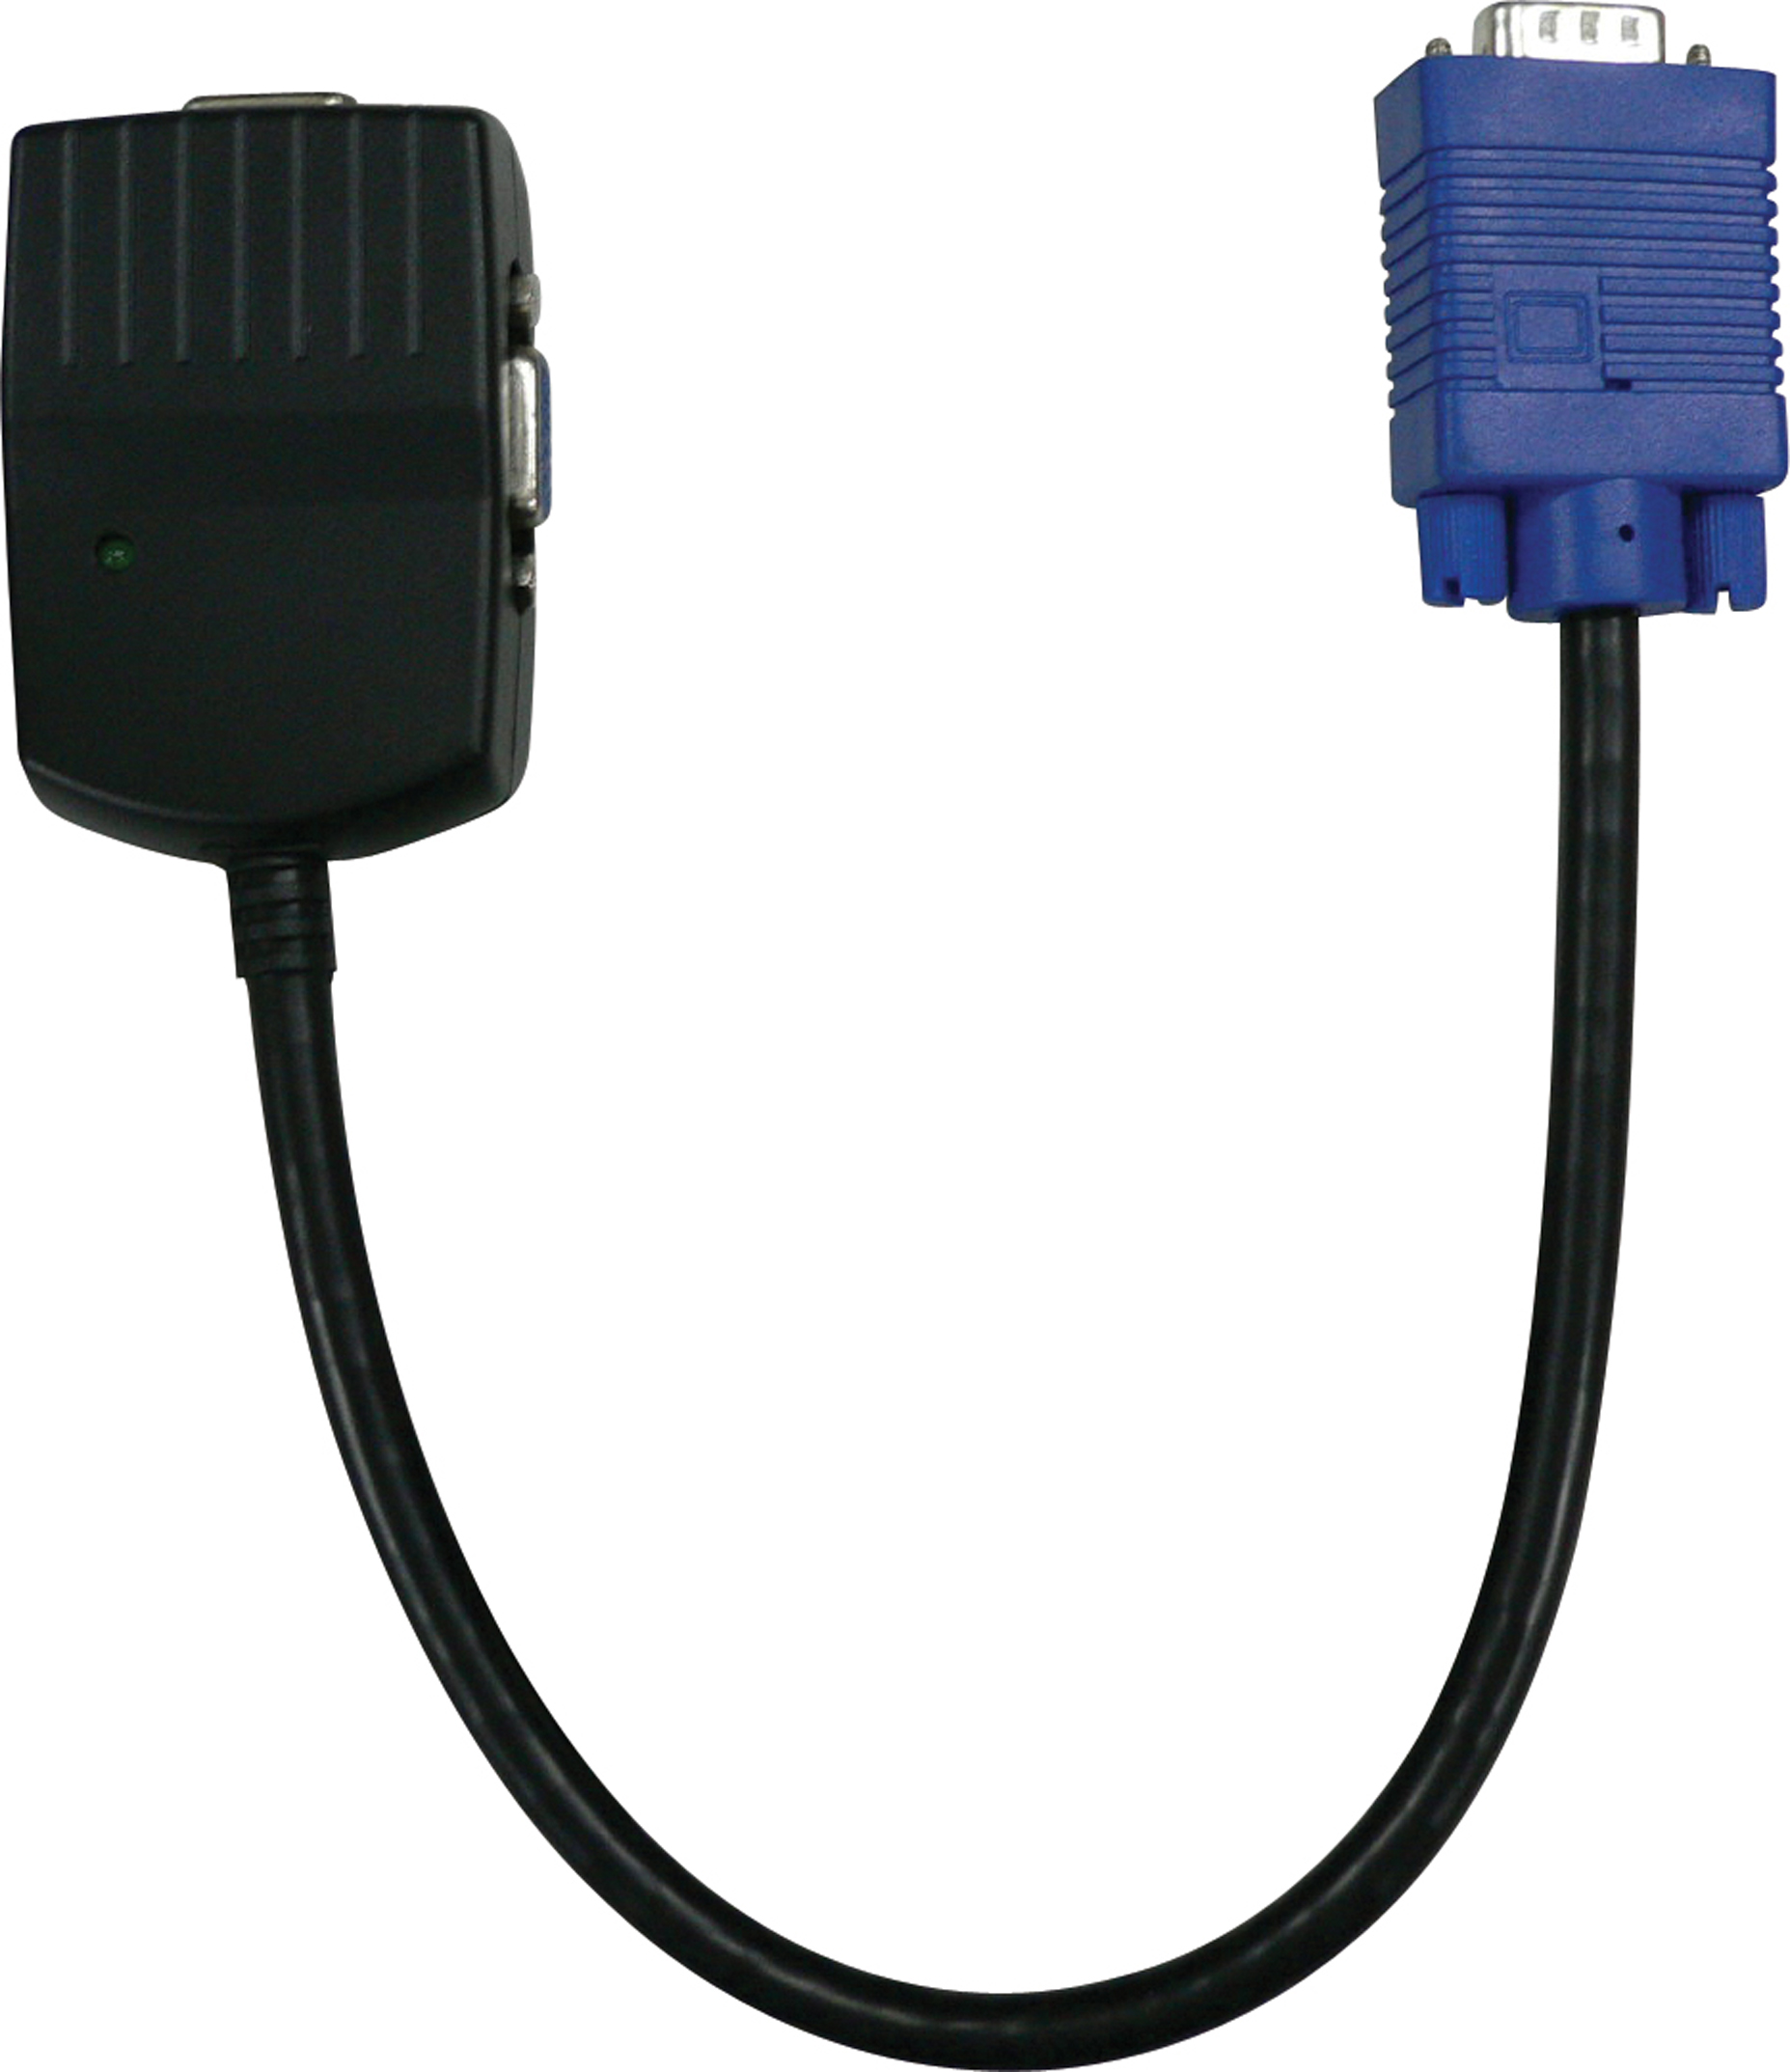 Port Kabel Hdmi Harga Jual Kabel Hdmi to Vga 3